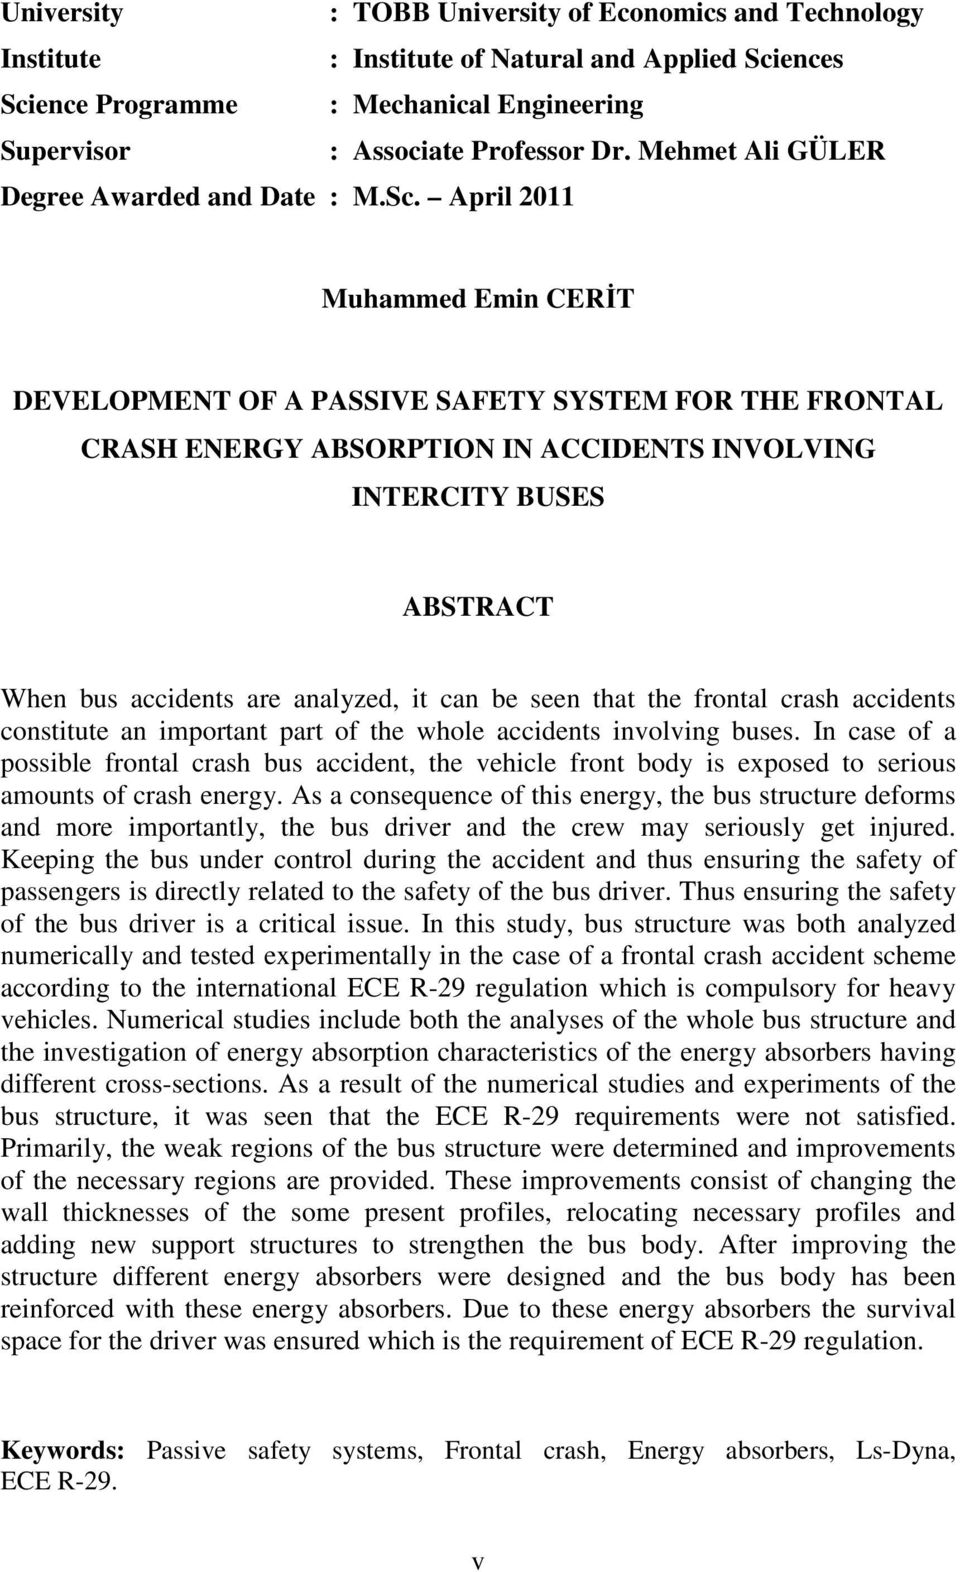 April 2011 Muhammed Emin CERİT DEVELOPMENT OF A PASSIVE SAFETY SYSTEM FOR THE FRONTAL CRASH ENERGY ABSORPTION IN ACCIDENTS INVOLVING INTERCITY BUSES ABSTRACT When bus accidents are analyzed, it can